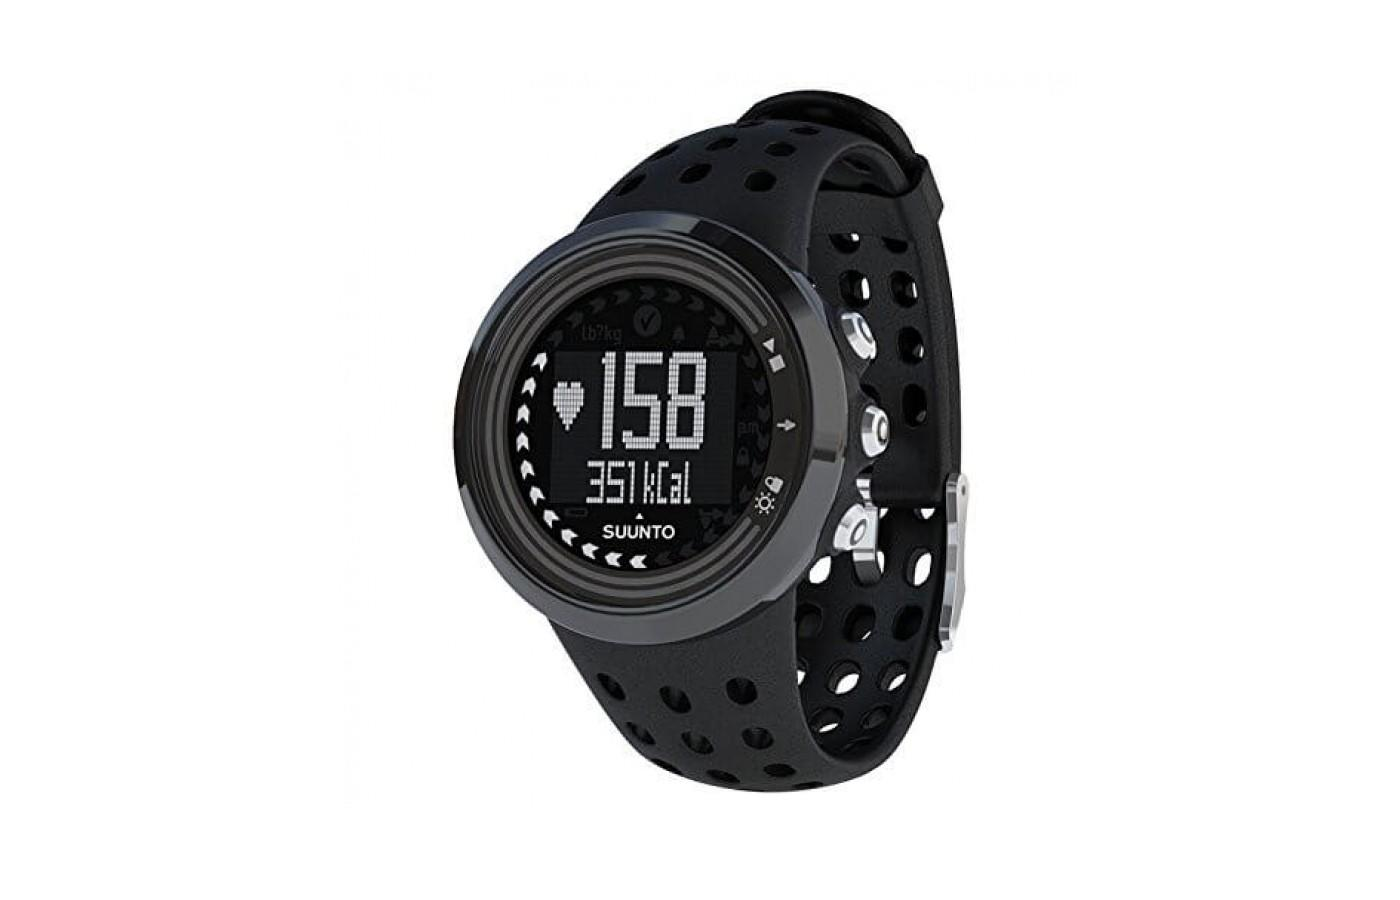 Suunto M5 is a good heart rate monitor